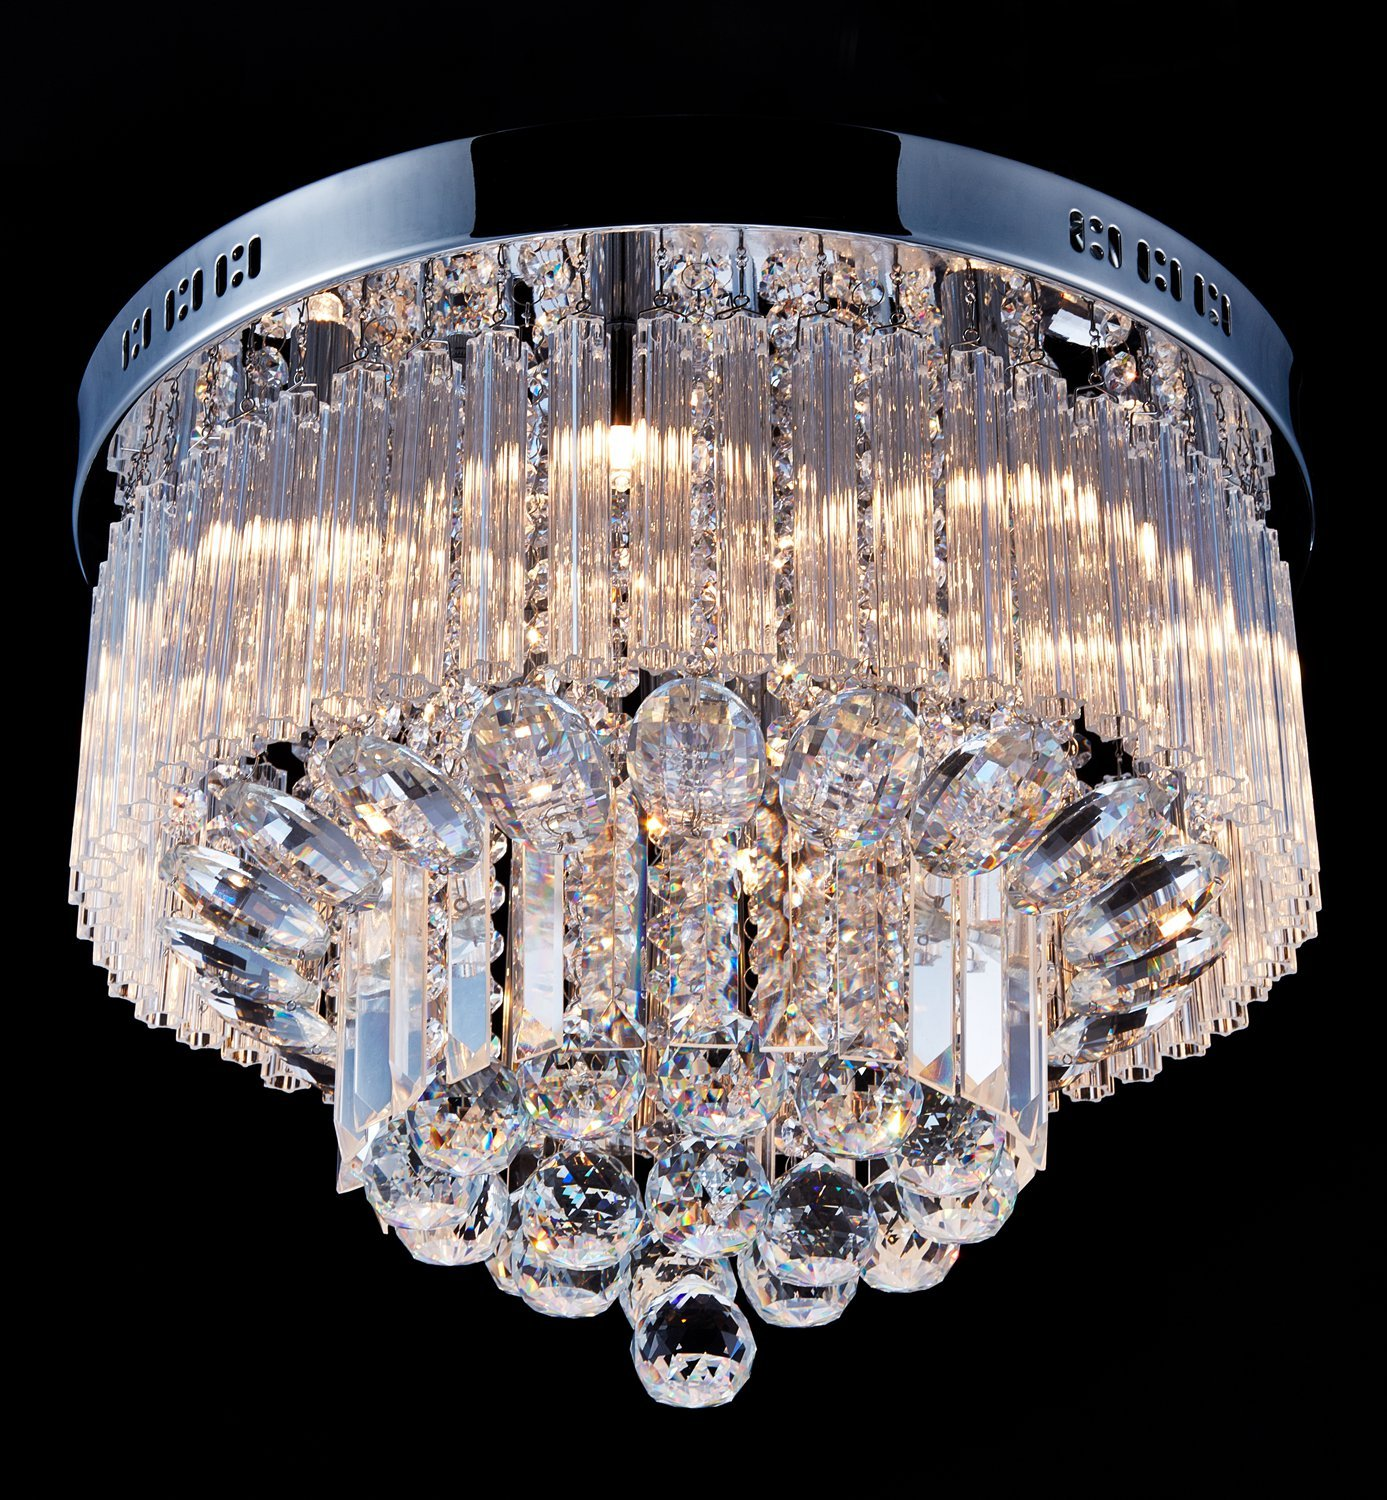 Saint Mossi Crystal Rain Drop Chandelier Modern & Contemporary Flush mount Ceiling Pendant Light G9 Bulbs Required H12